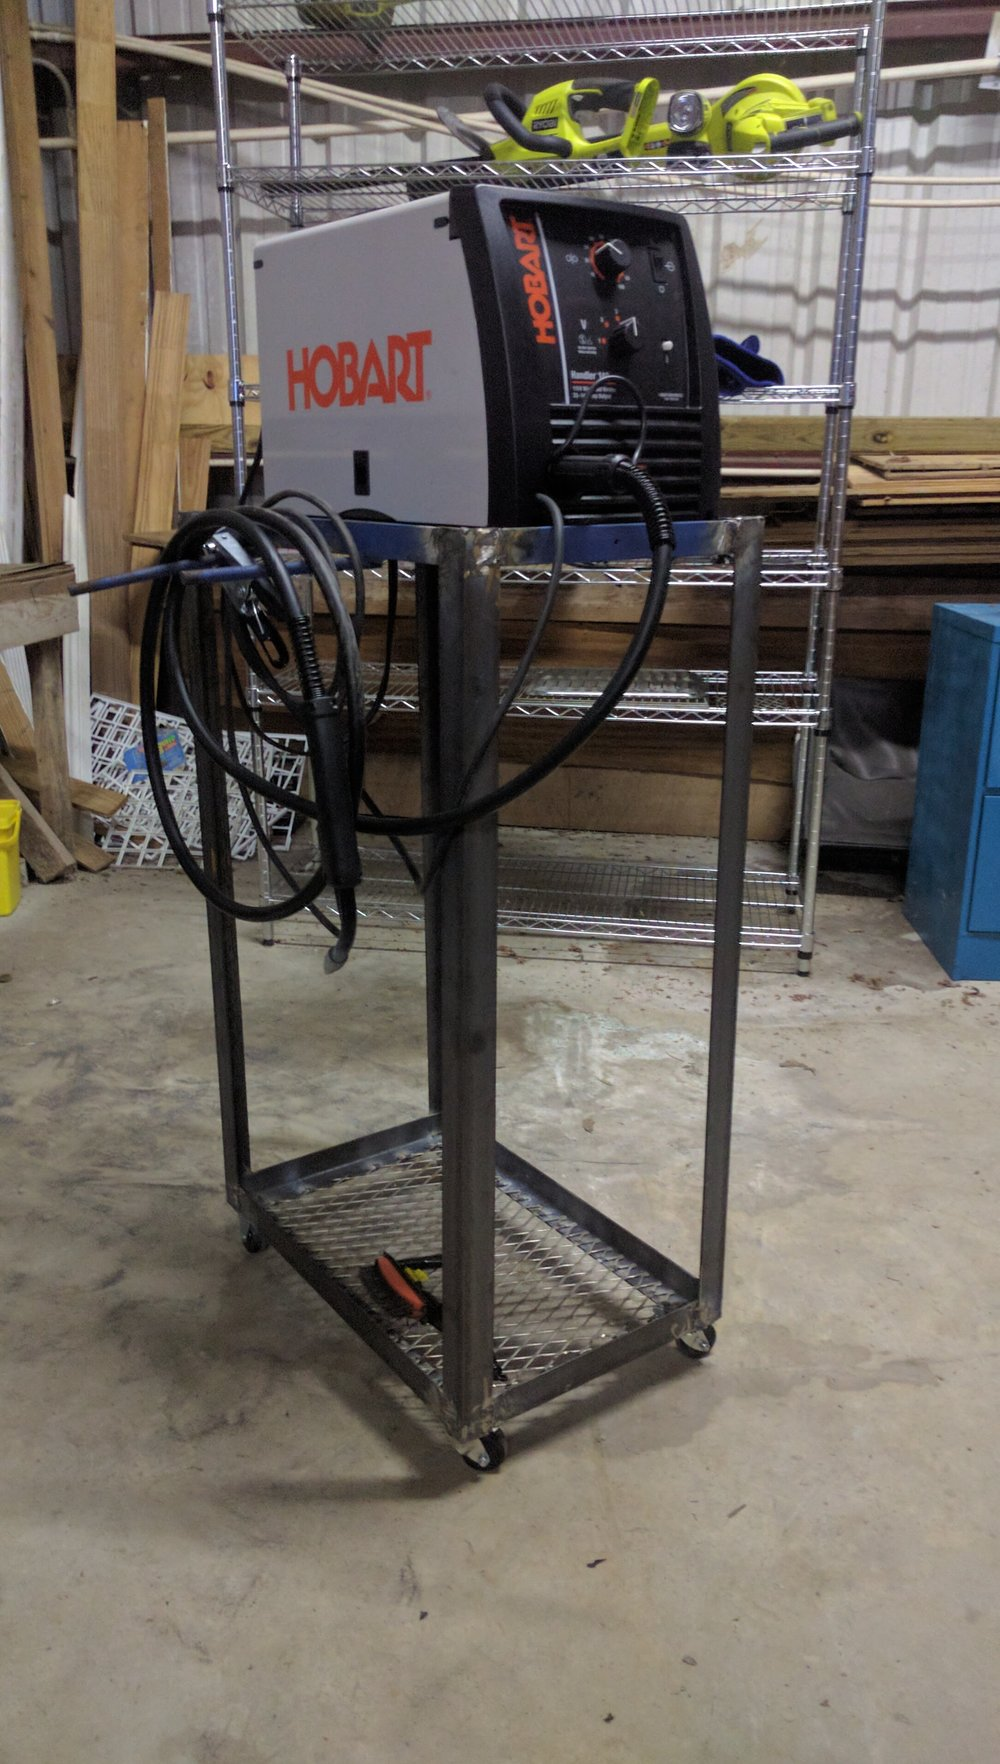 Welding machine cart.